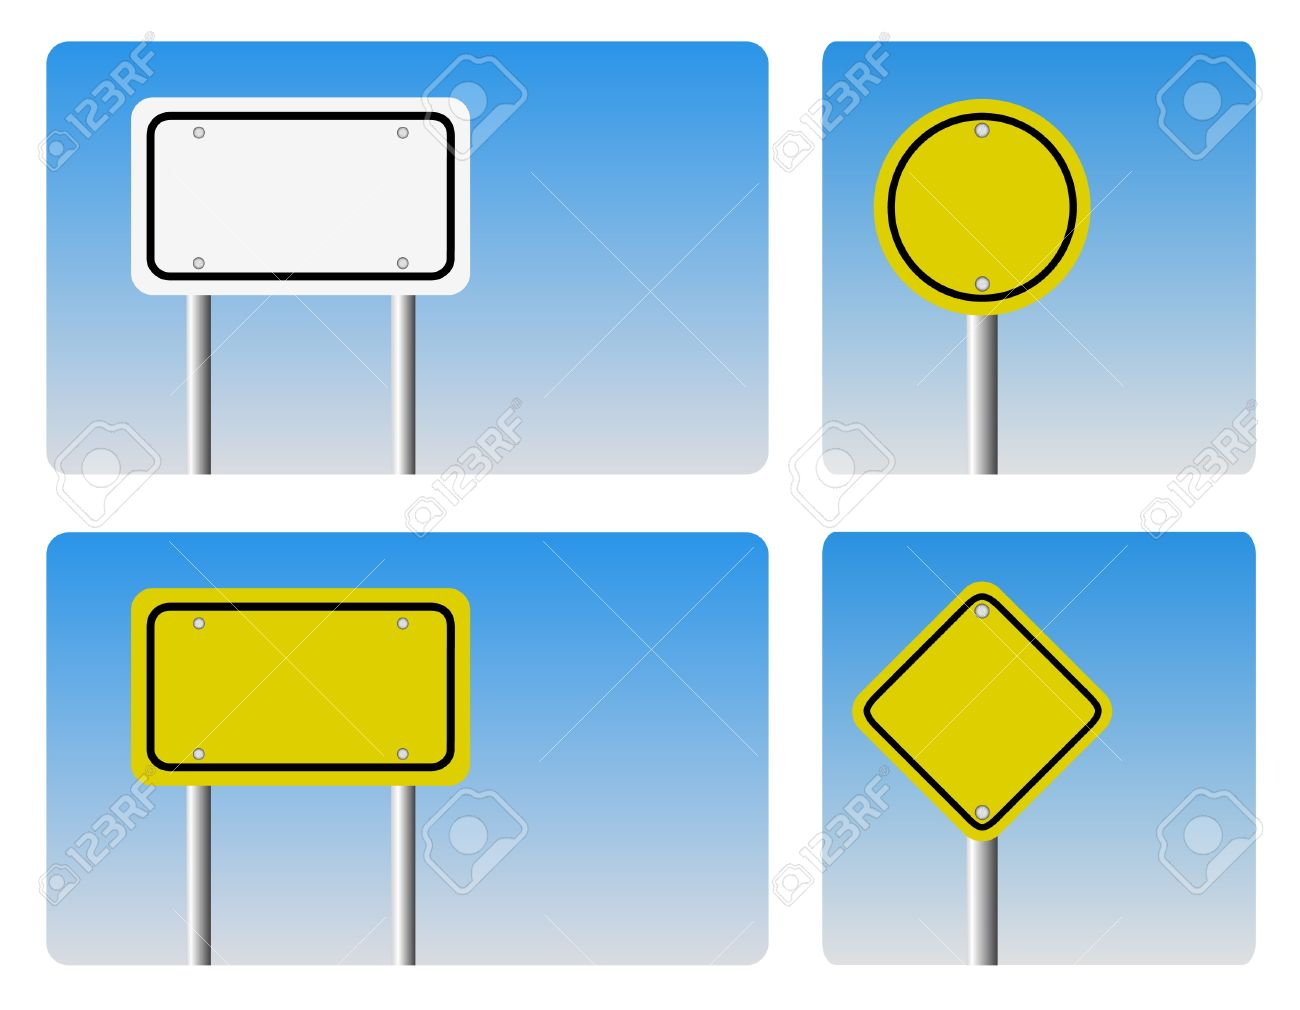 Blank Guidepost Sign Royalty Free Cliparts, Vectors, And Stock.